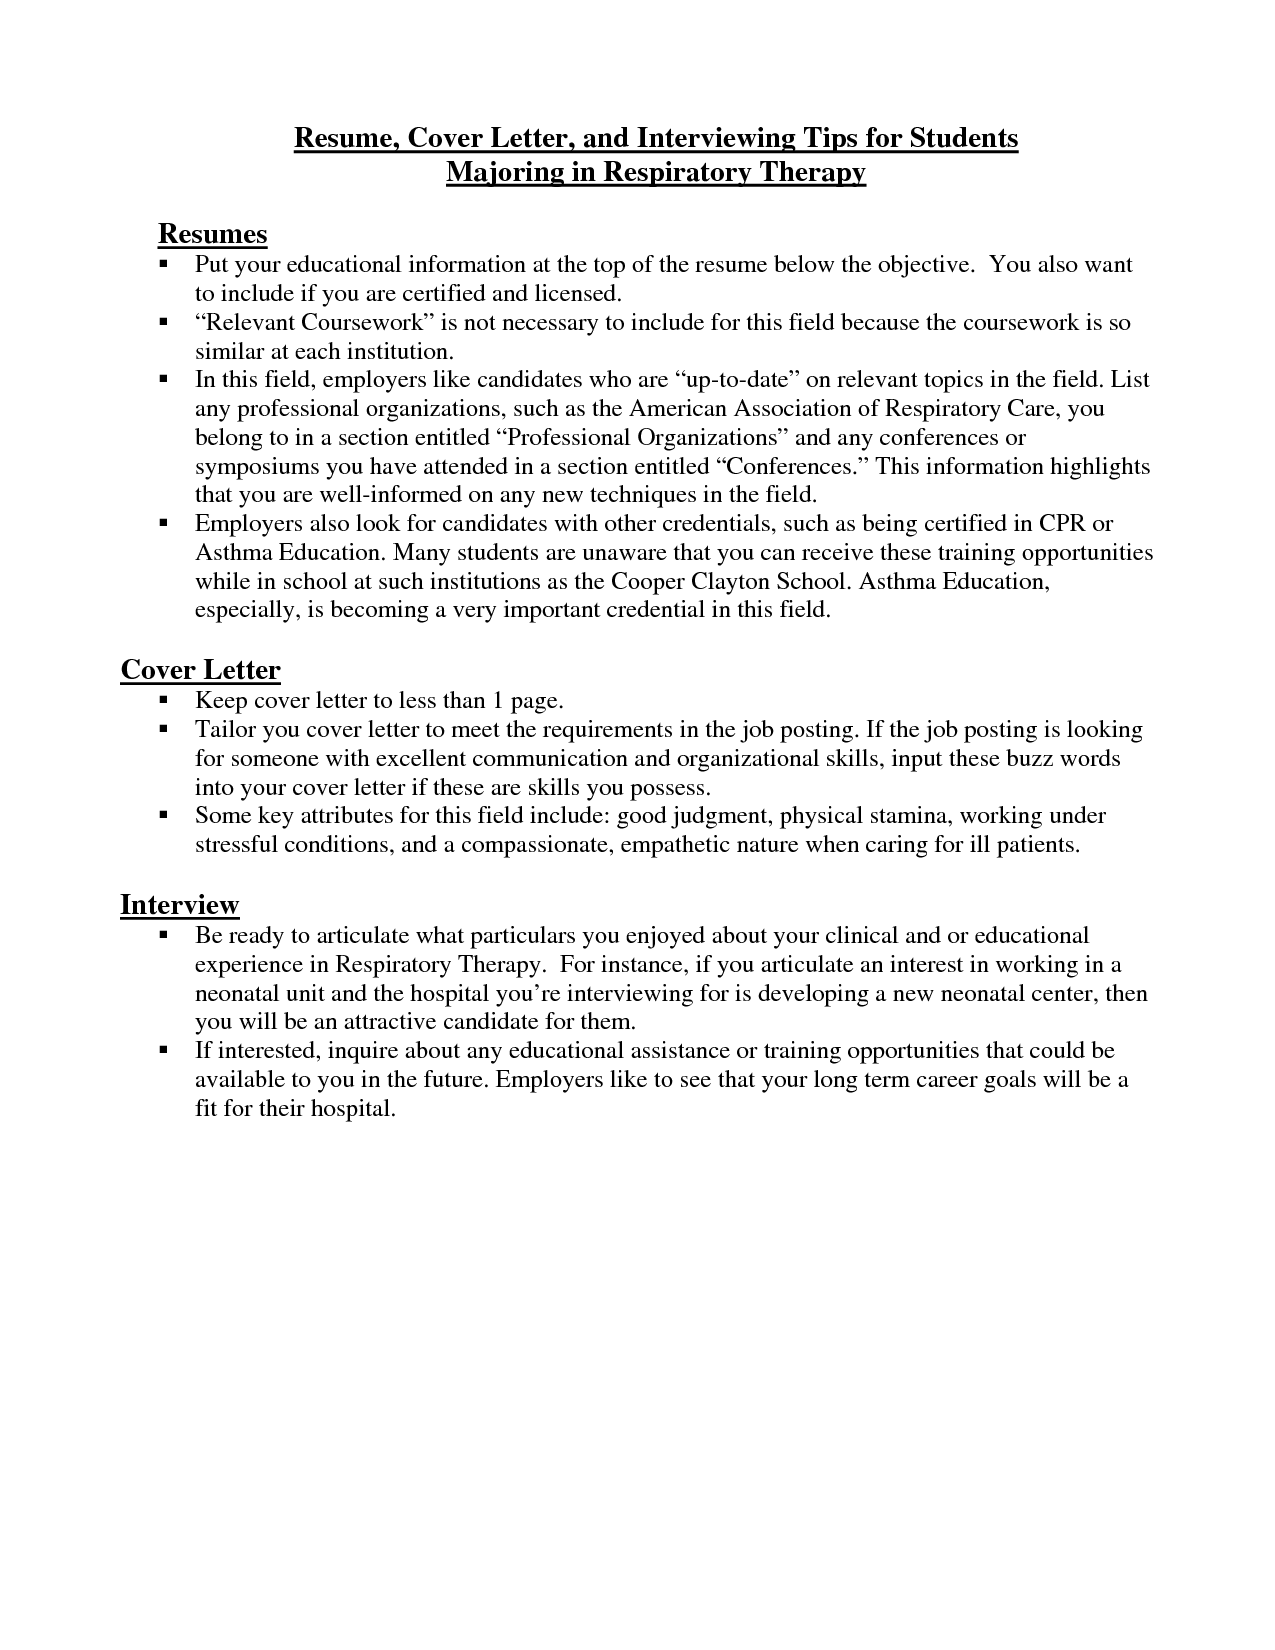 respiratory therapist cover letter resume cover letter and interviewing tips for students majoring - Counseling Cover Letter Examples